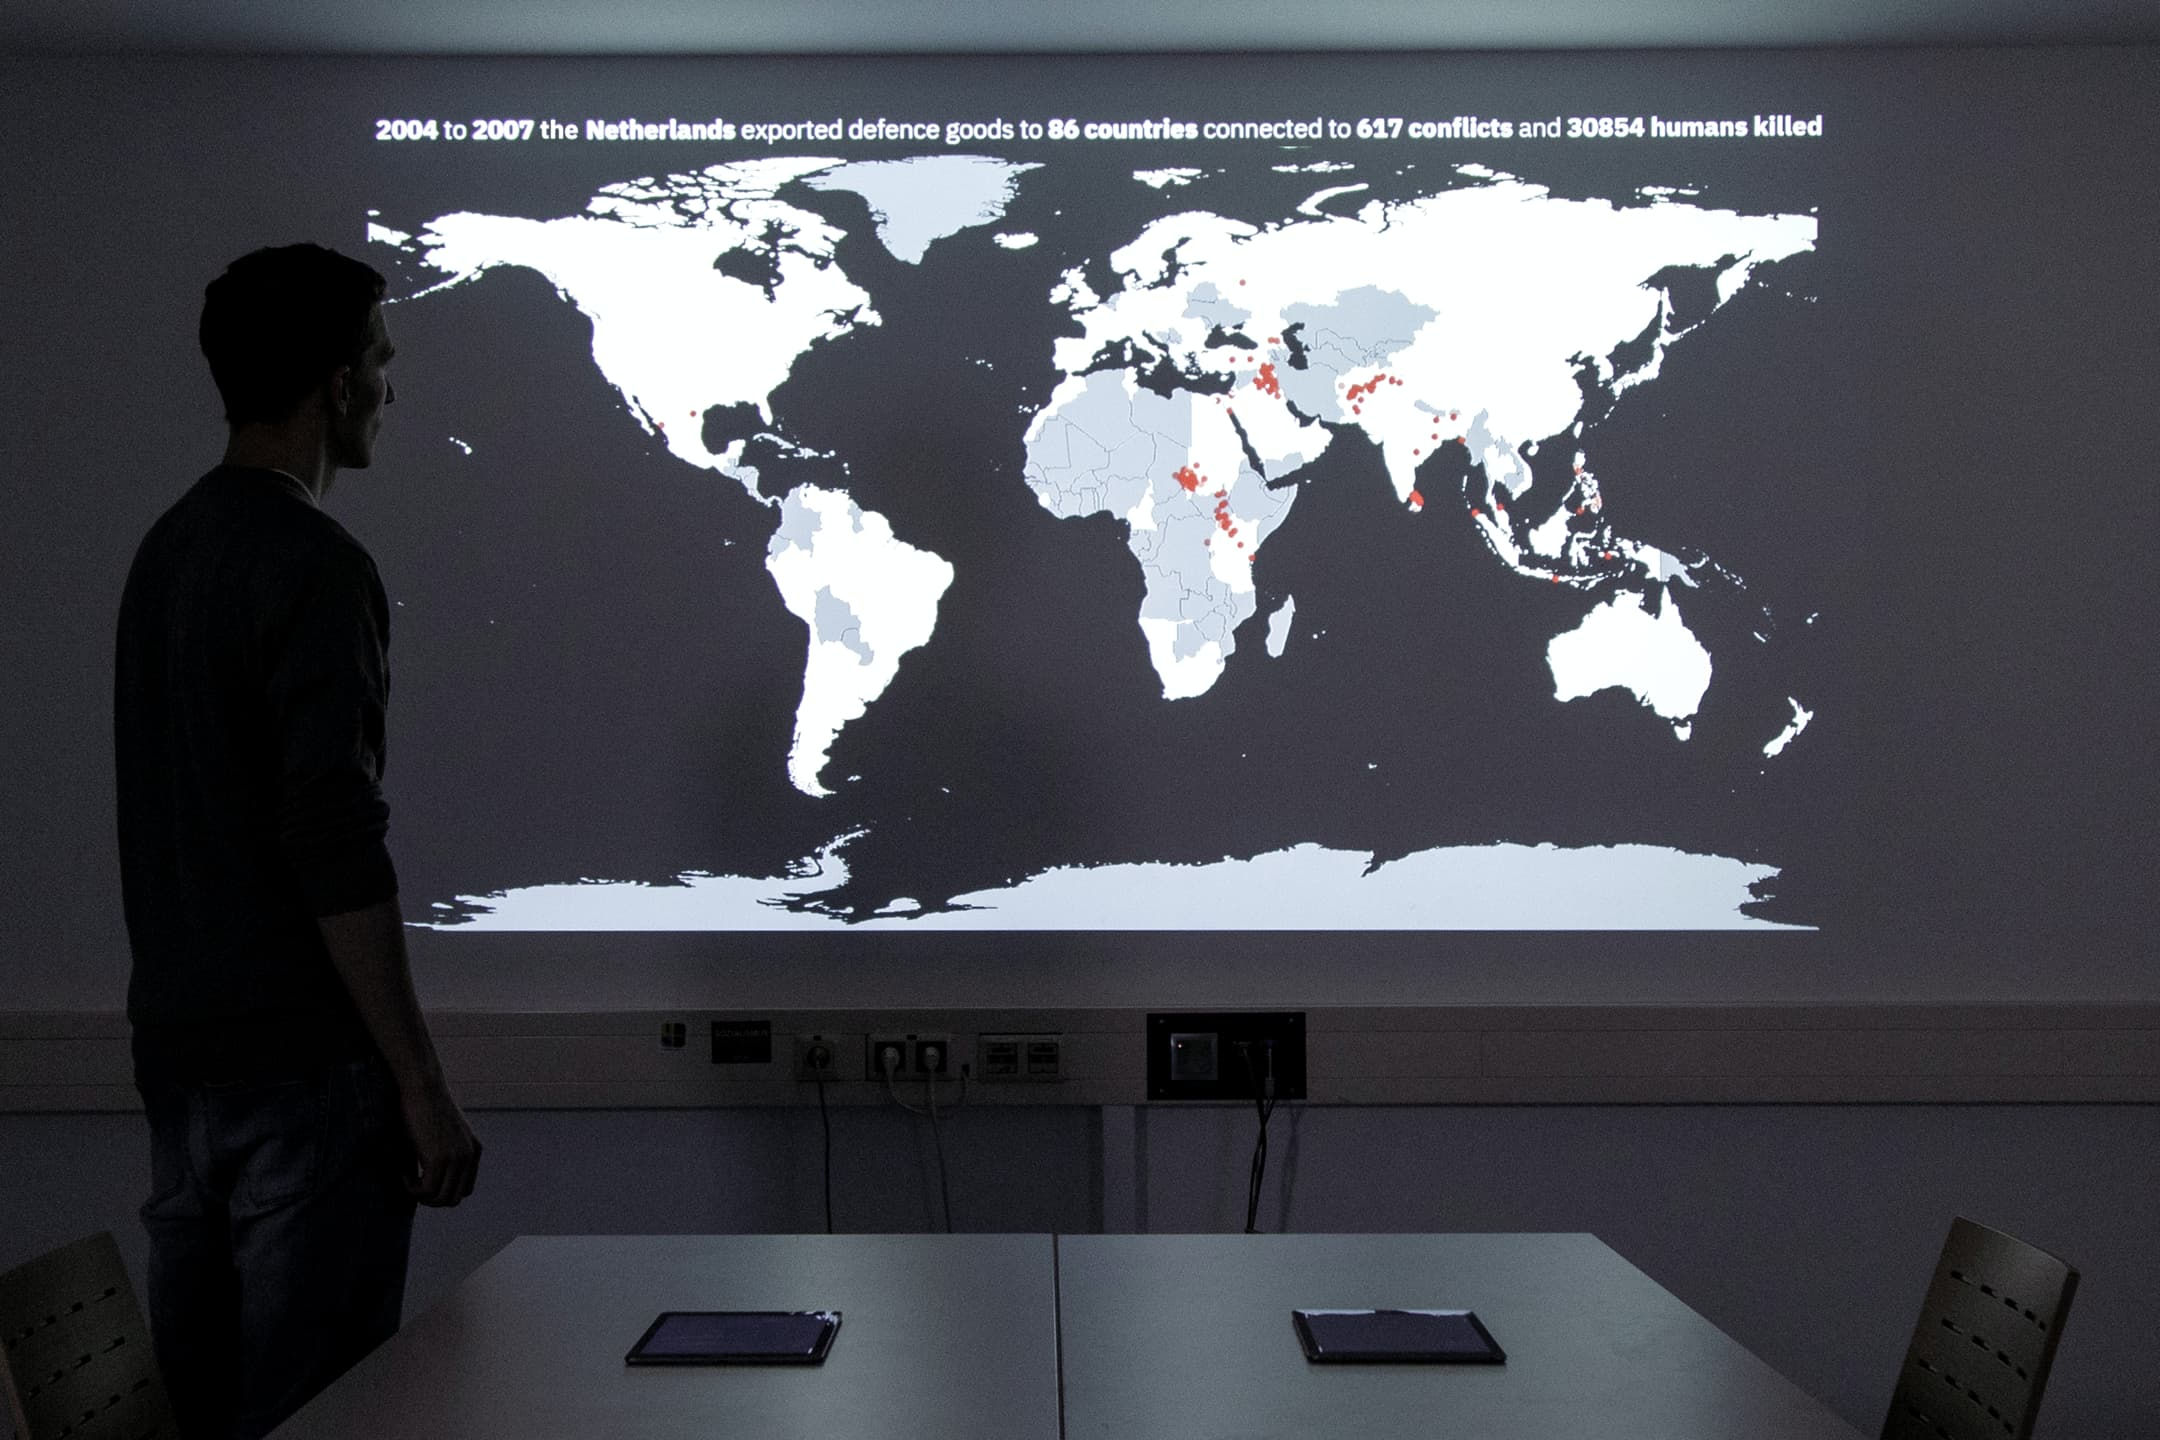 """Person standing in front of a projection of a world map. The text above the map reads: """"2004 to 2007 the Netherlands exported defence goods to 86 countries connected to 617 conflicts and 30854 humans killed�"""